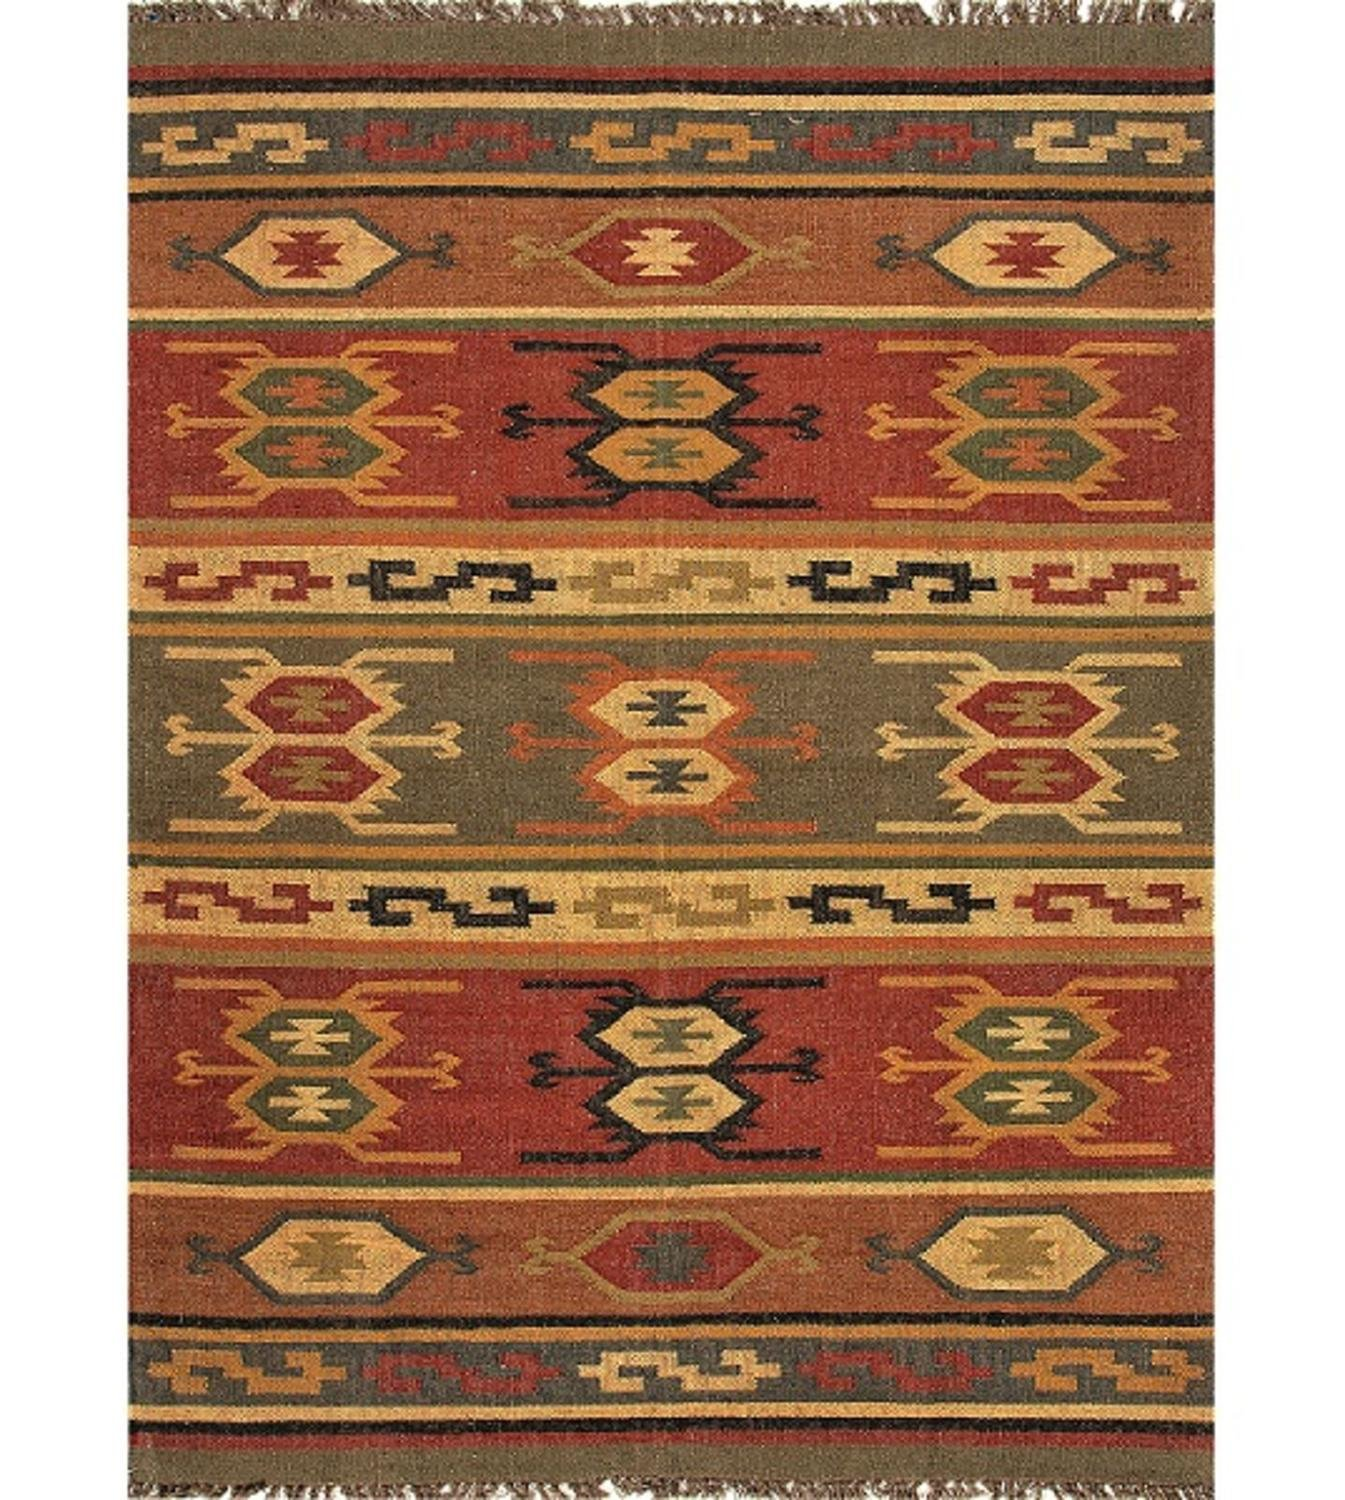 Diva At Home 8' x 10' Cardinal Red, Gold & Green Tribal Hand Woven Reversible Wool and Jute Area Throw Rug